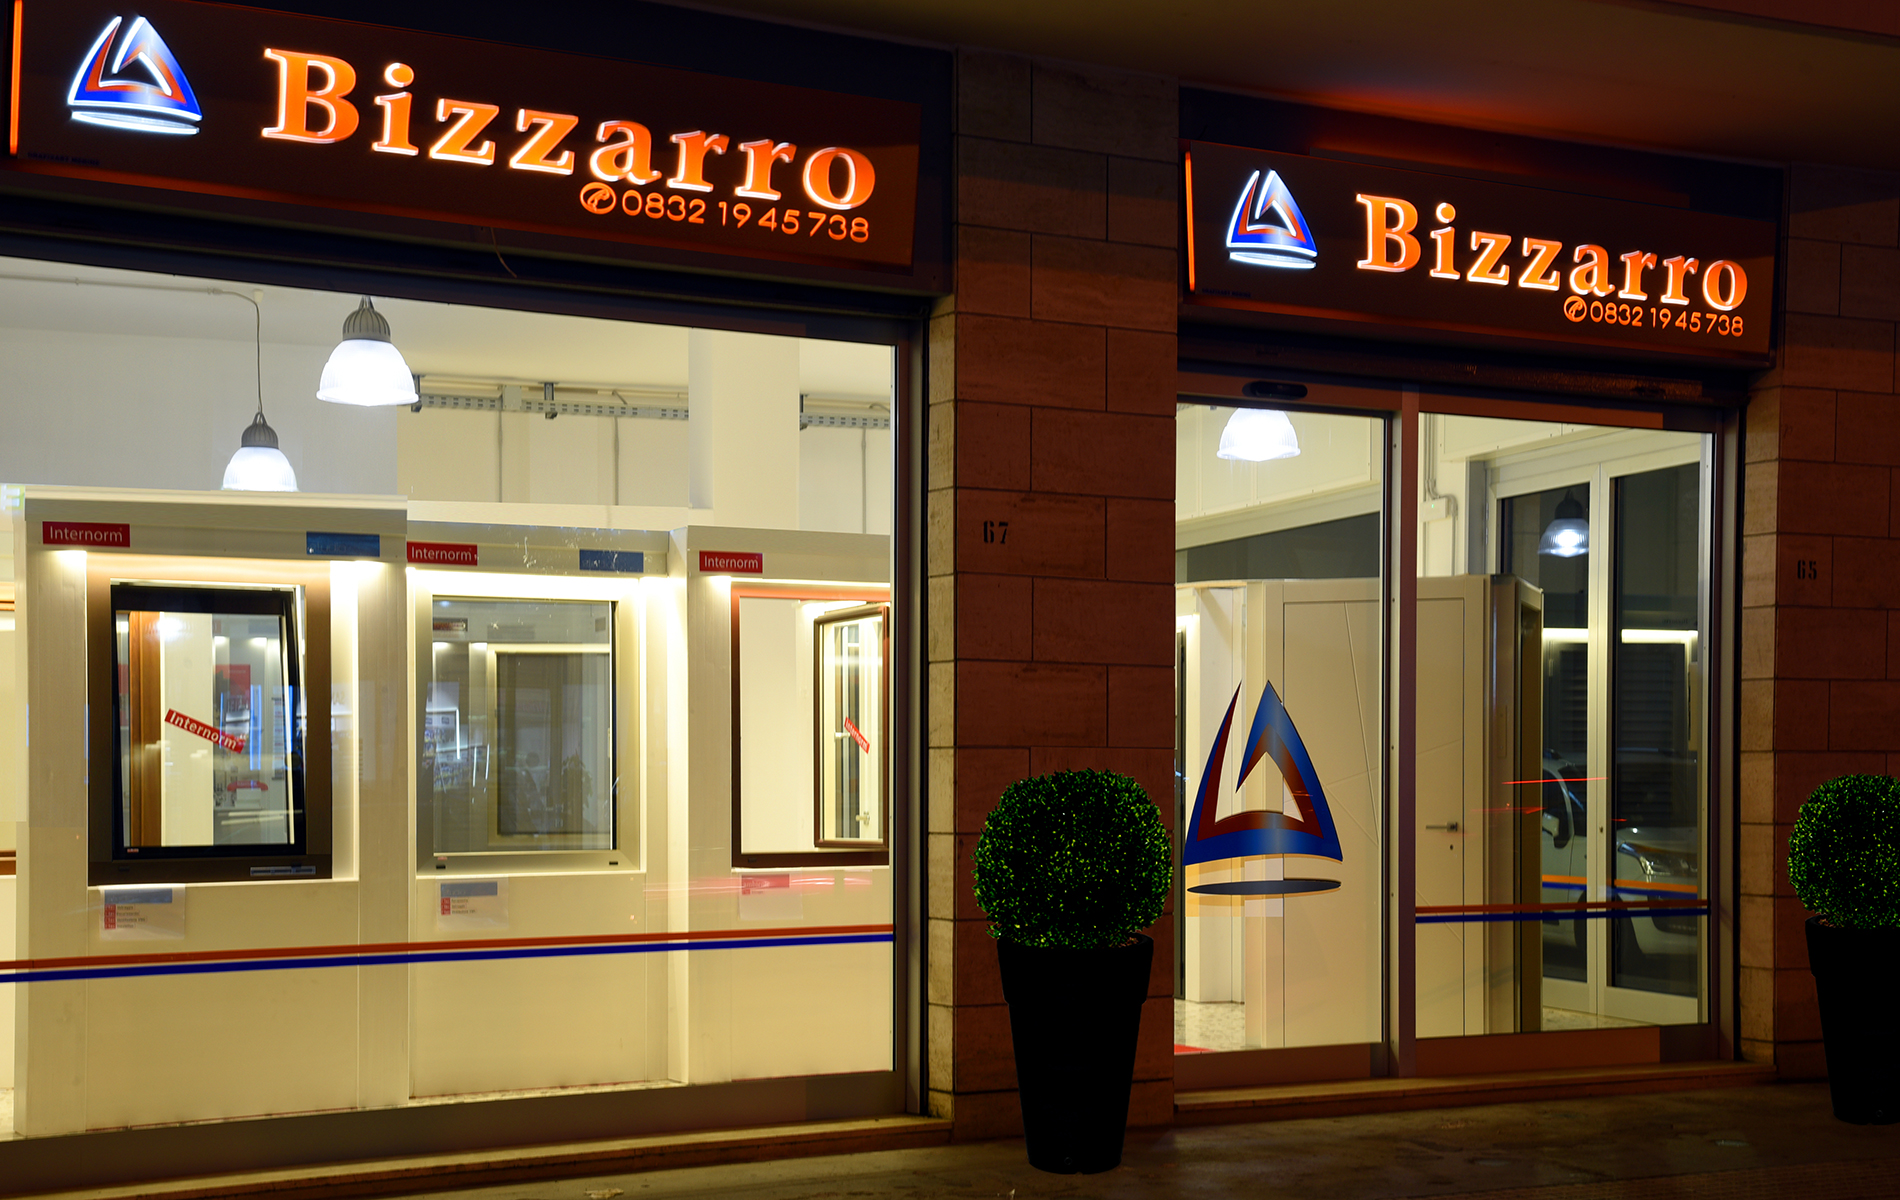 bizzarro showroom